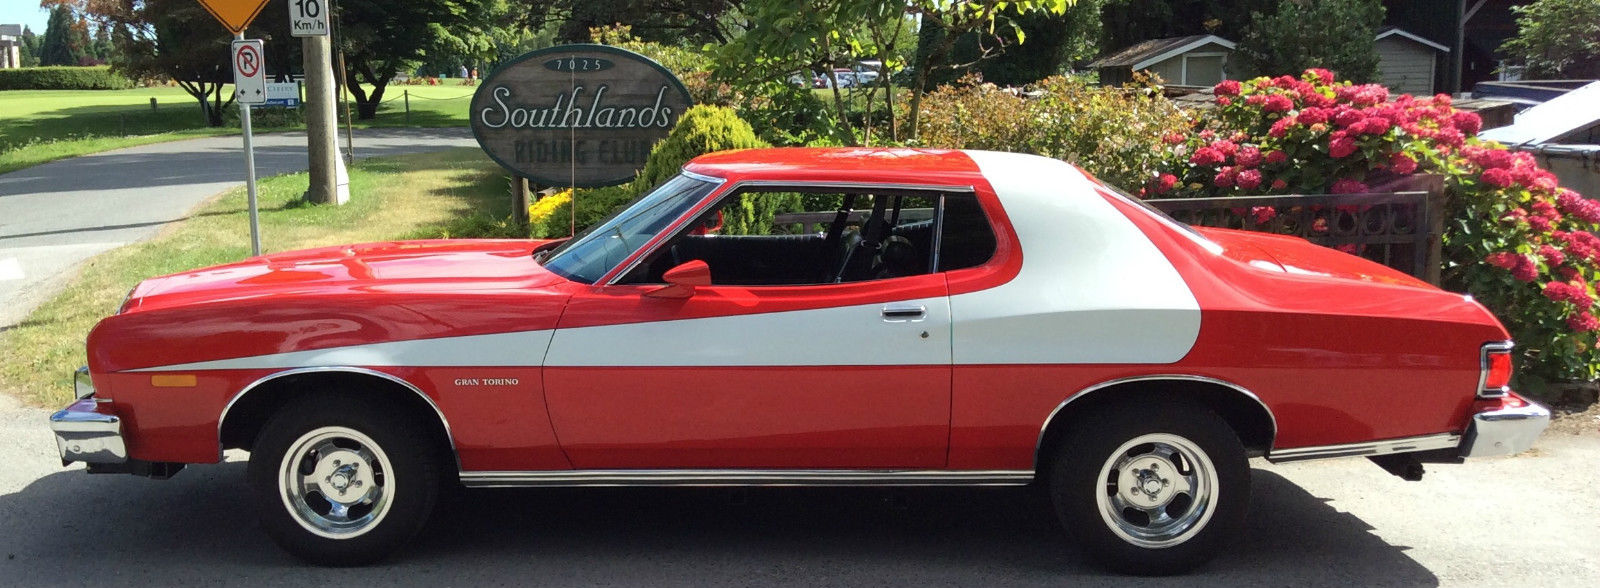 ebay find this starsky and hutch gran torino is the real deal it was in both the. Black Bedroom Furniture Sets. Home Design Ideas